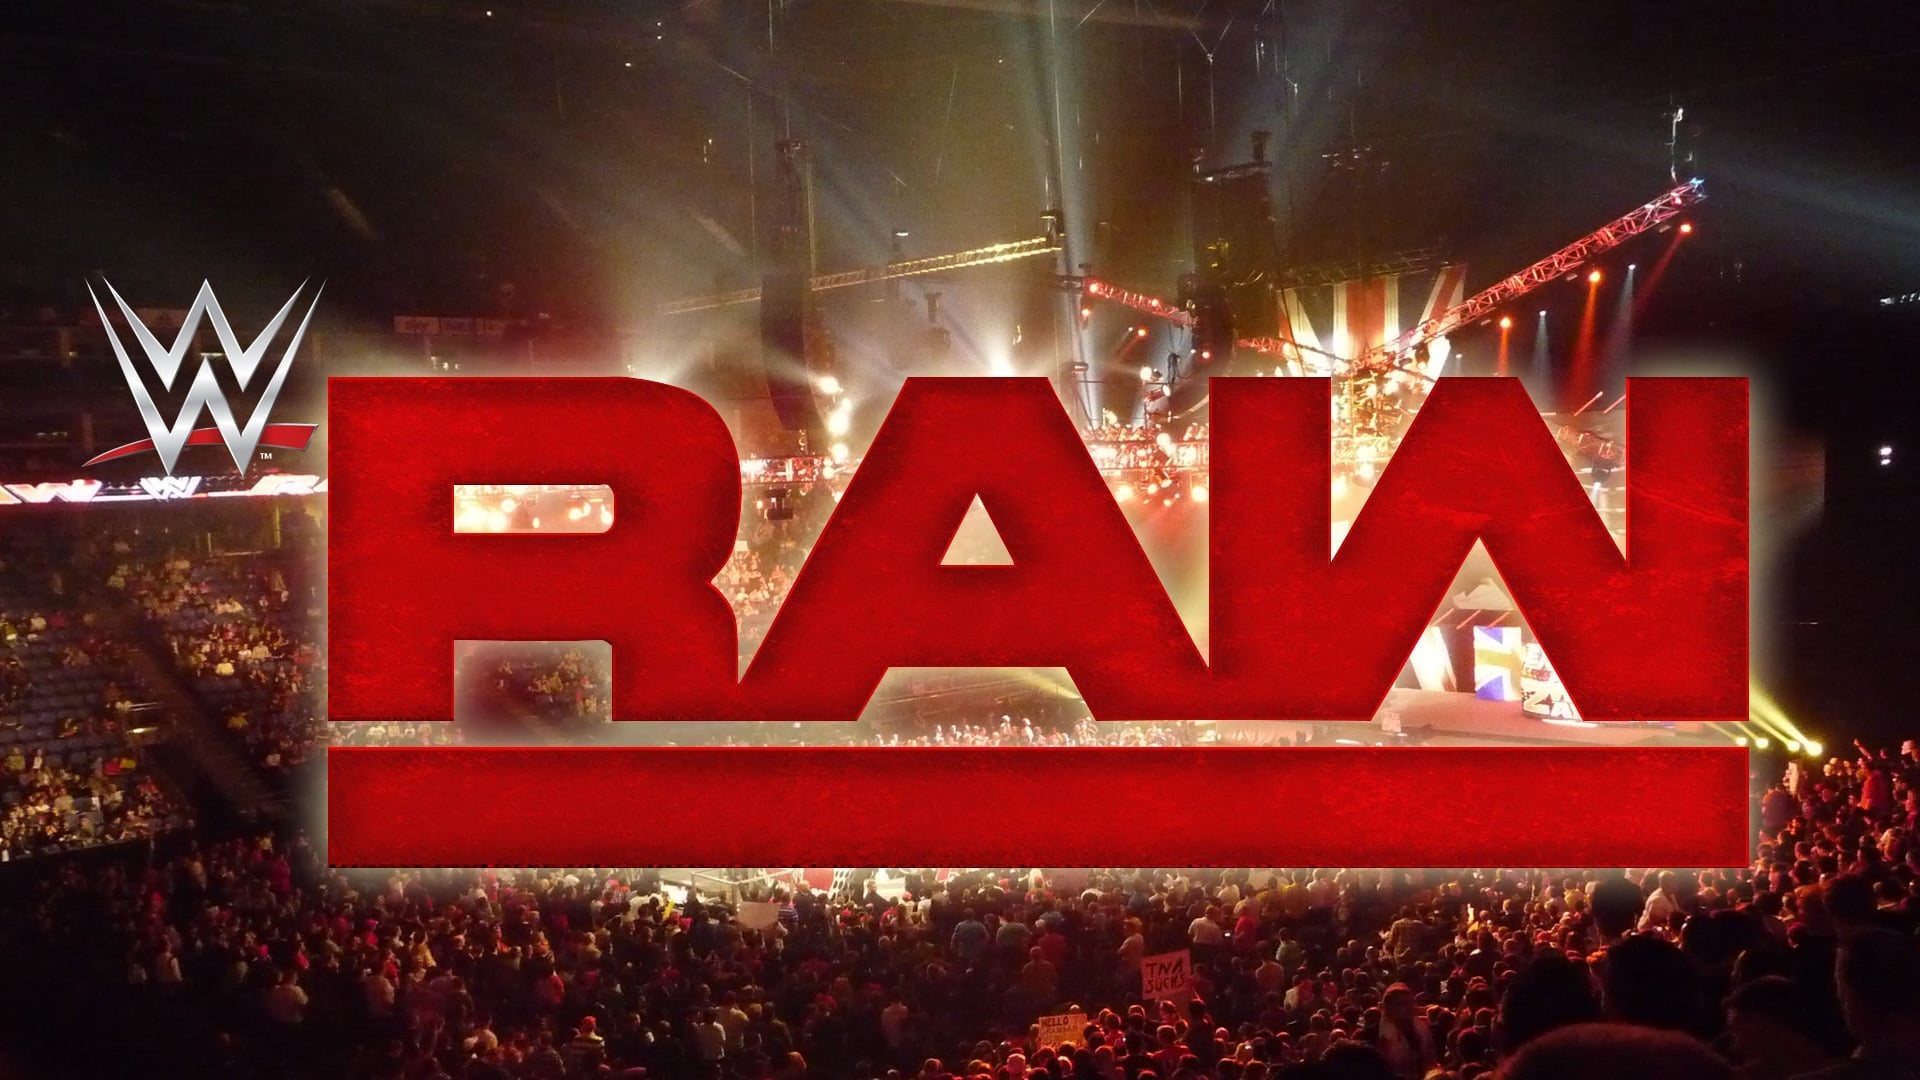 WWE Raw - Season 21 Episode 27 : July 8, 2013 (1970)